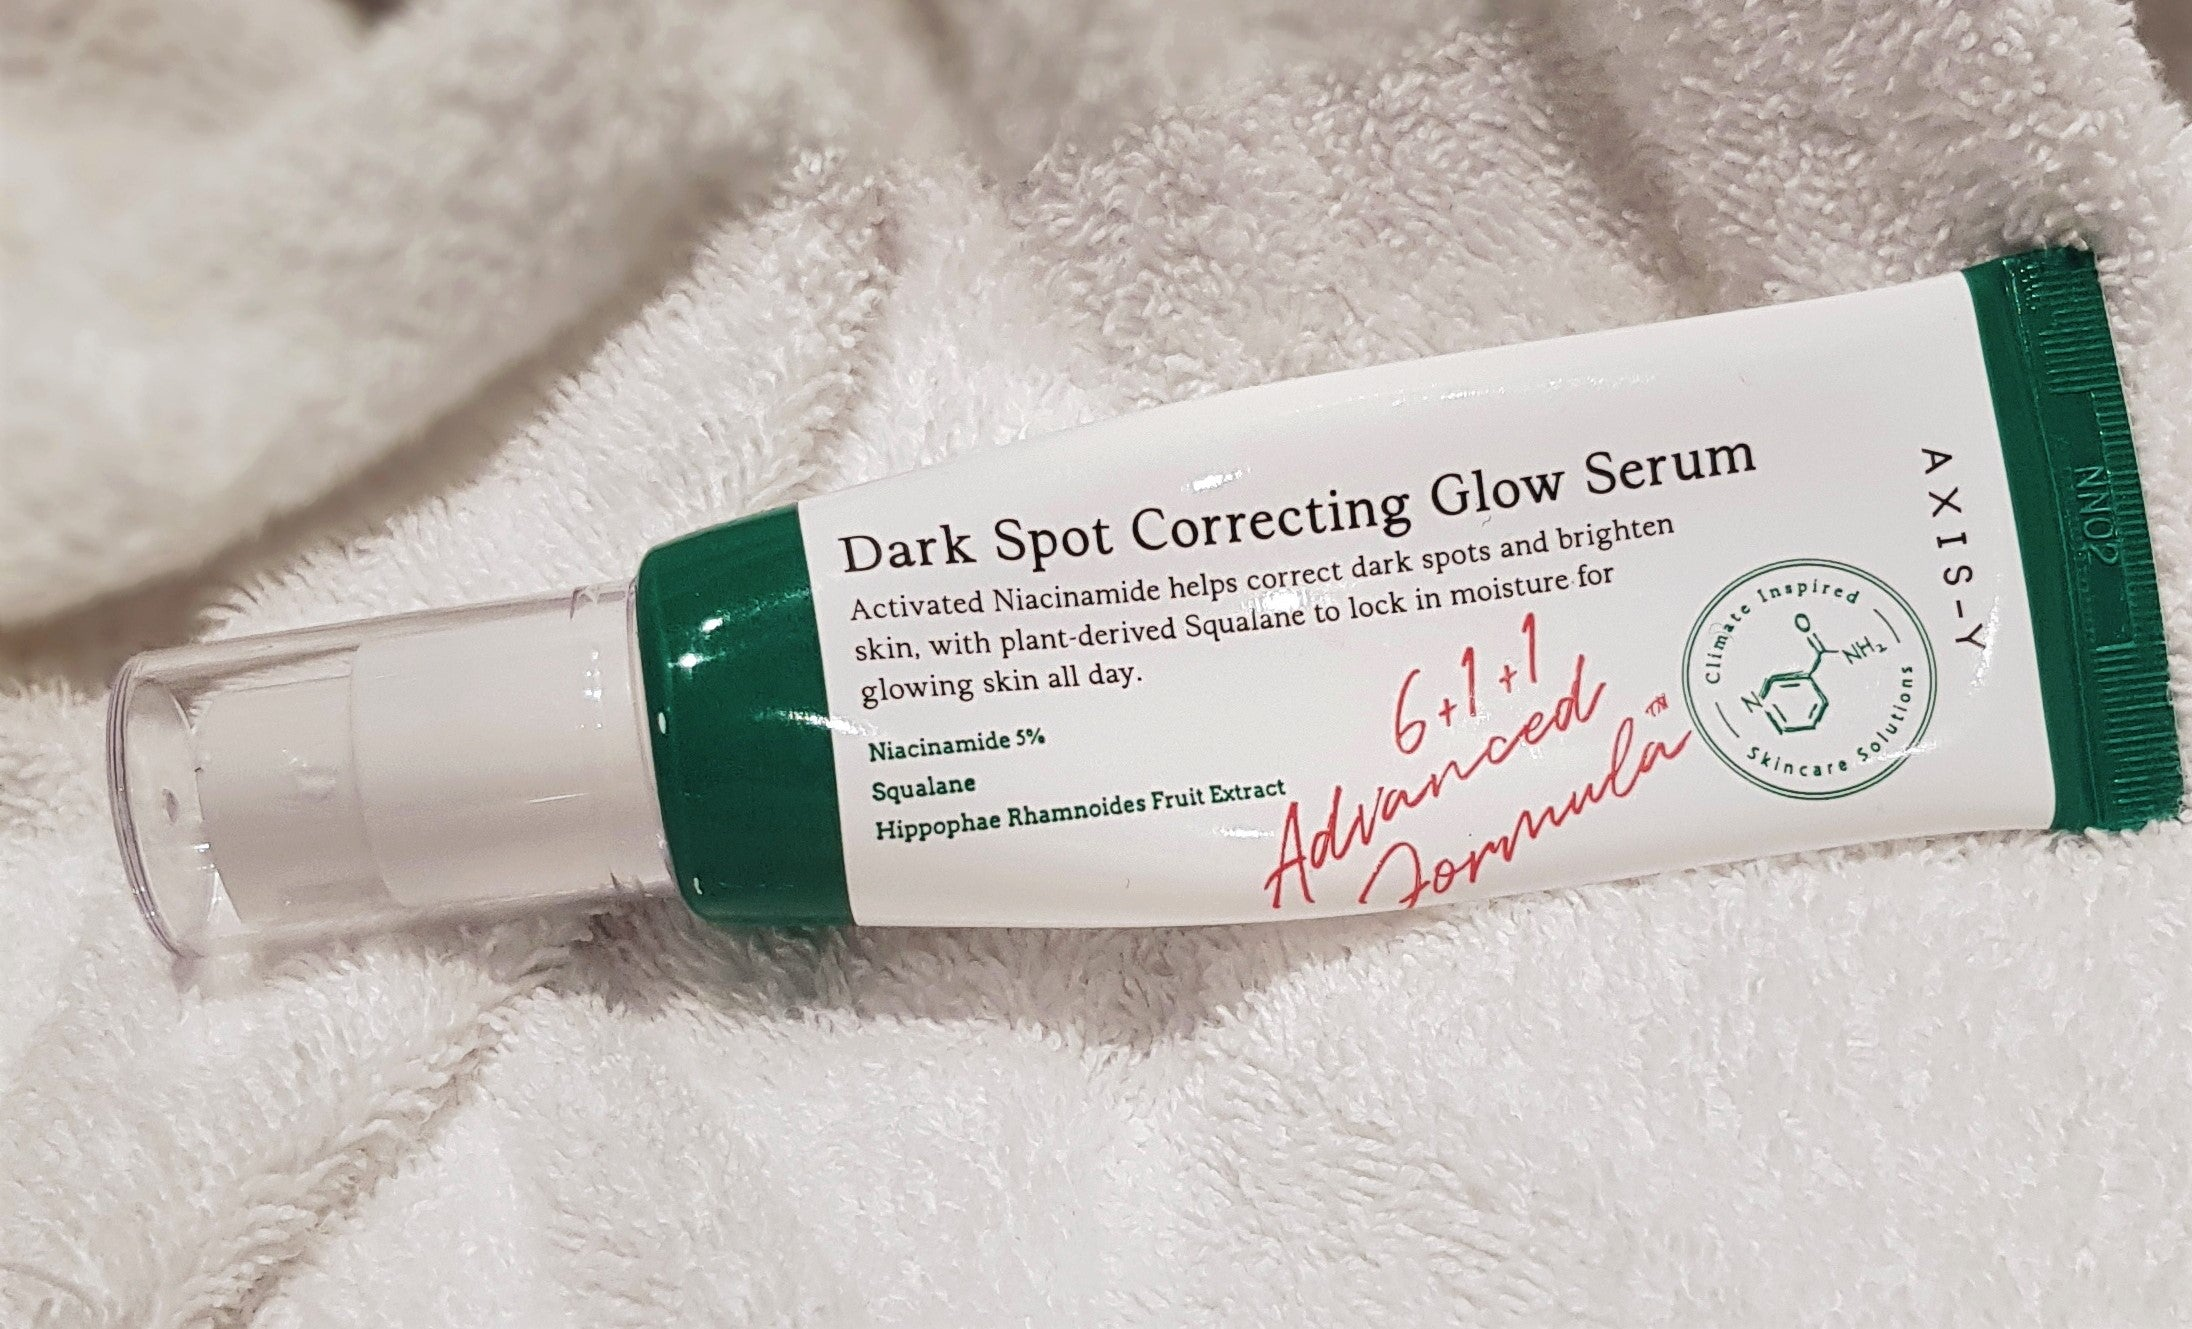 Axis-Y-Dark-Spot-Correcting-Glow-Serum